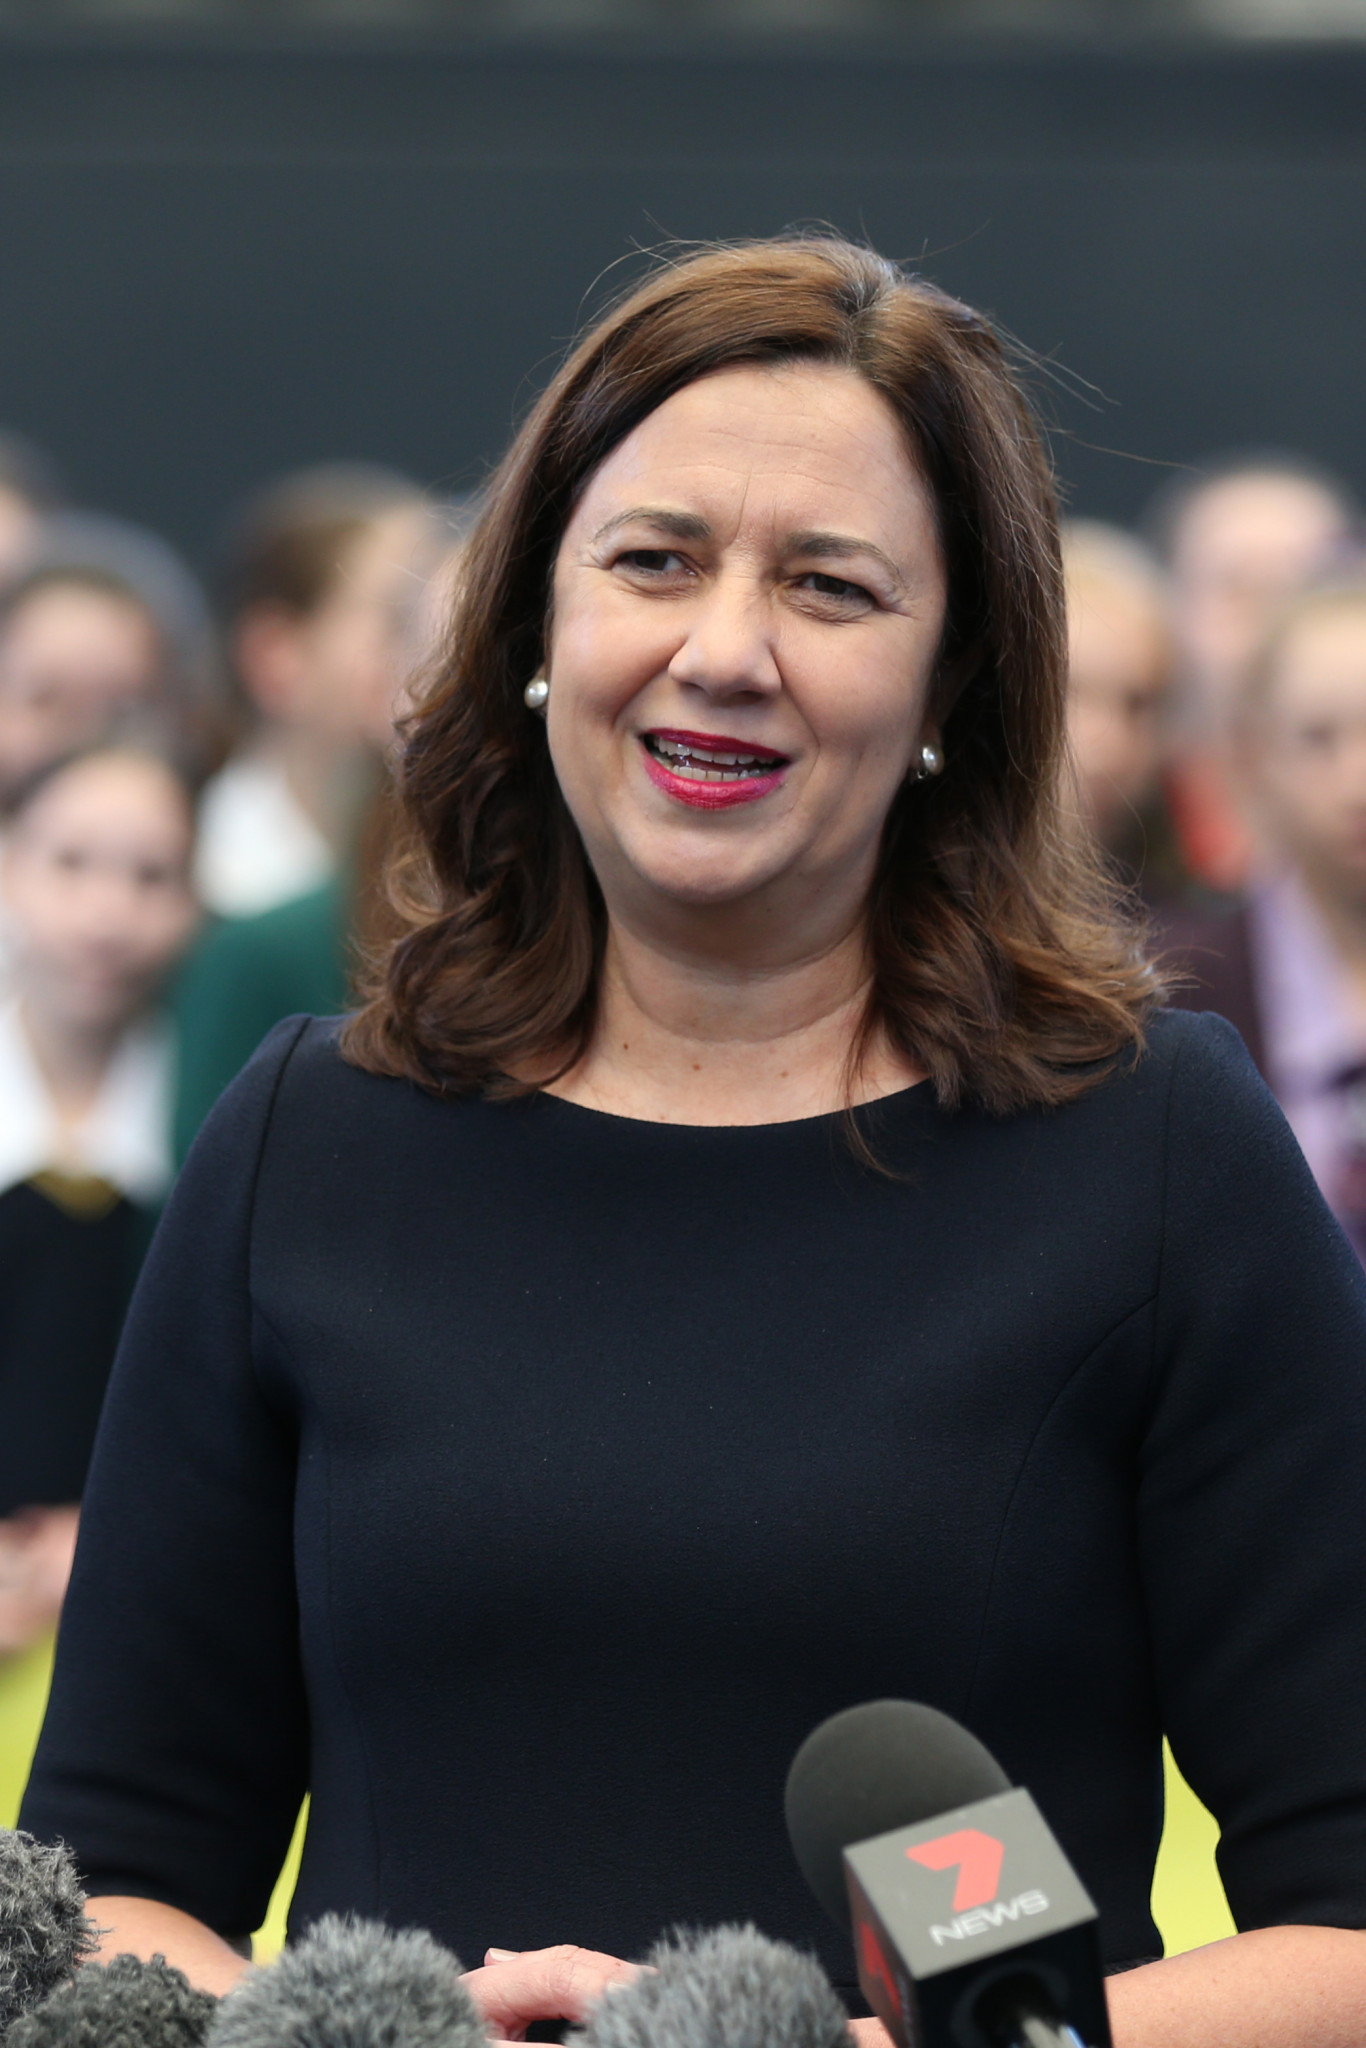 Queensland Premier insists 2032 Olympics plan will be abandoned if no long-term benefits proven